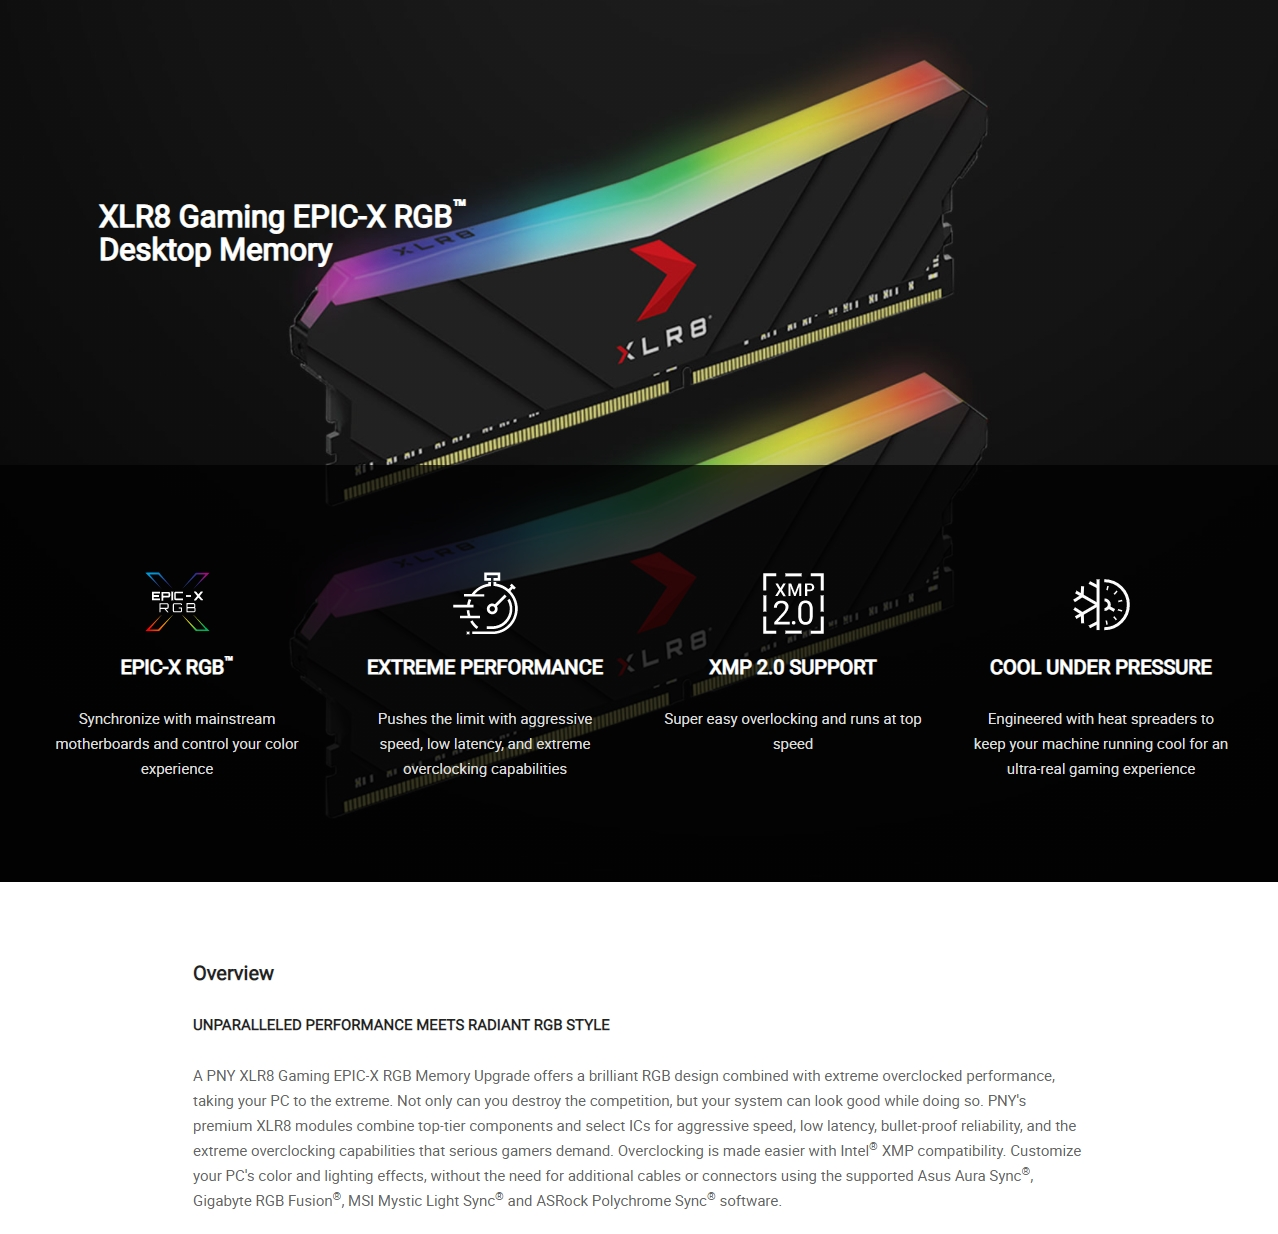 A large marketing image providing additional information about the product PNY XLR8 16GB (2x8GB) EPIC-X RGB Gaming DDR4 C18 3600Mhz - Black Edition - Additional alt info not provided